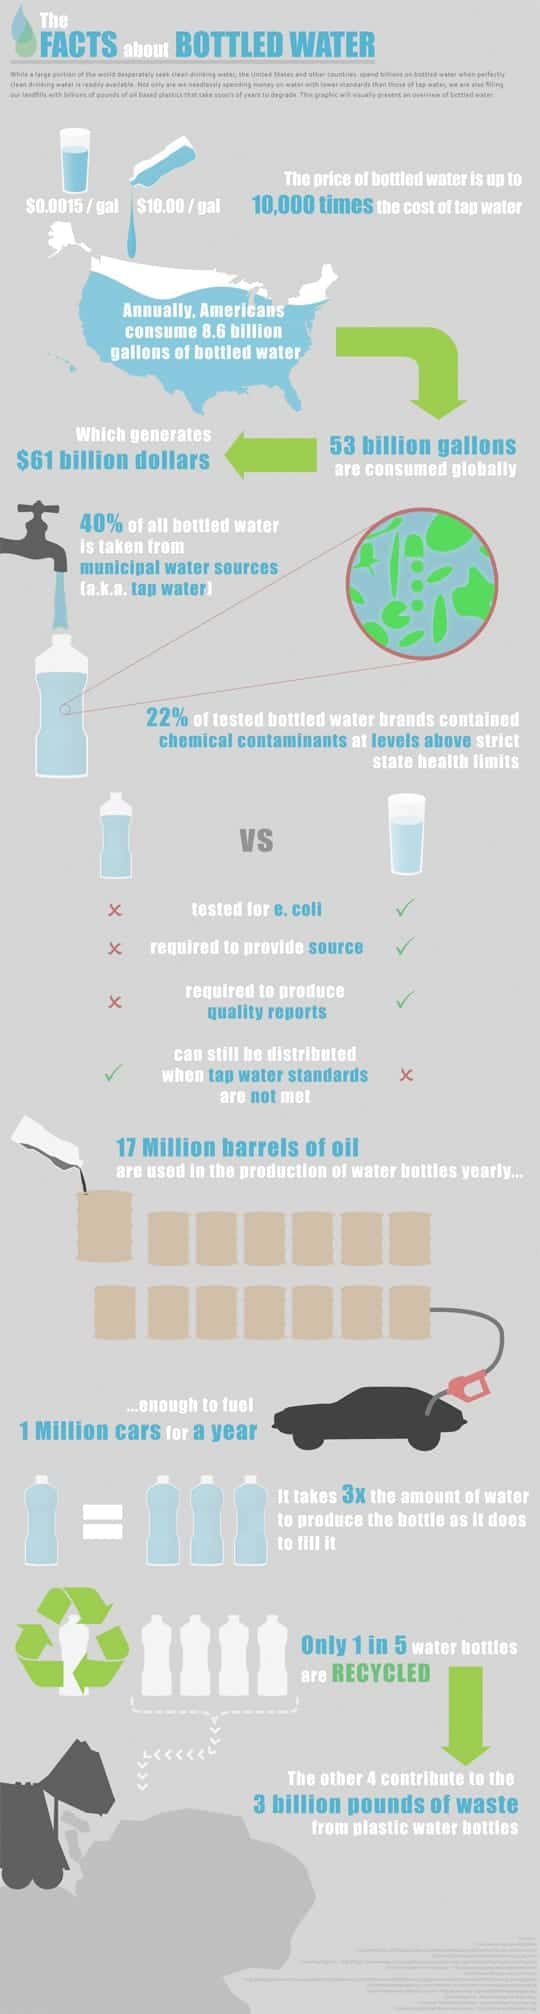 facts about bottled_water